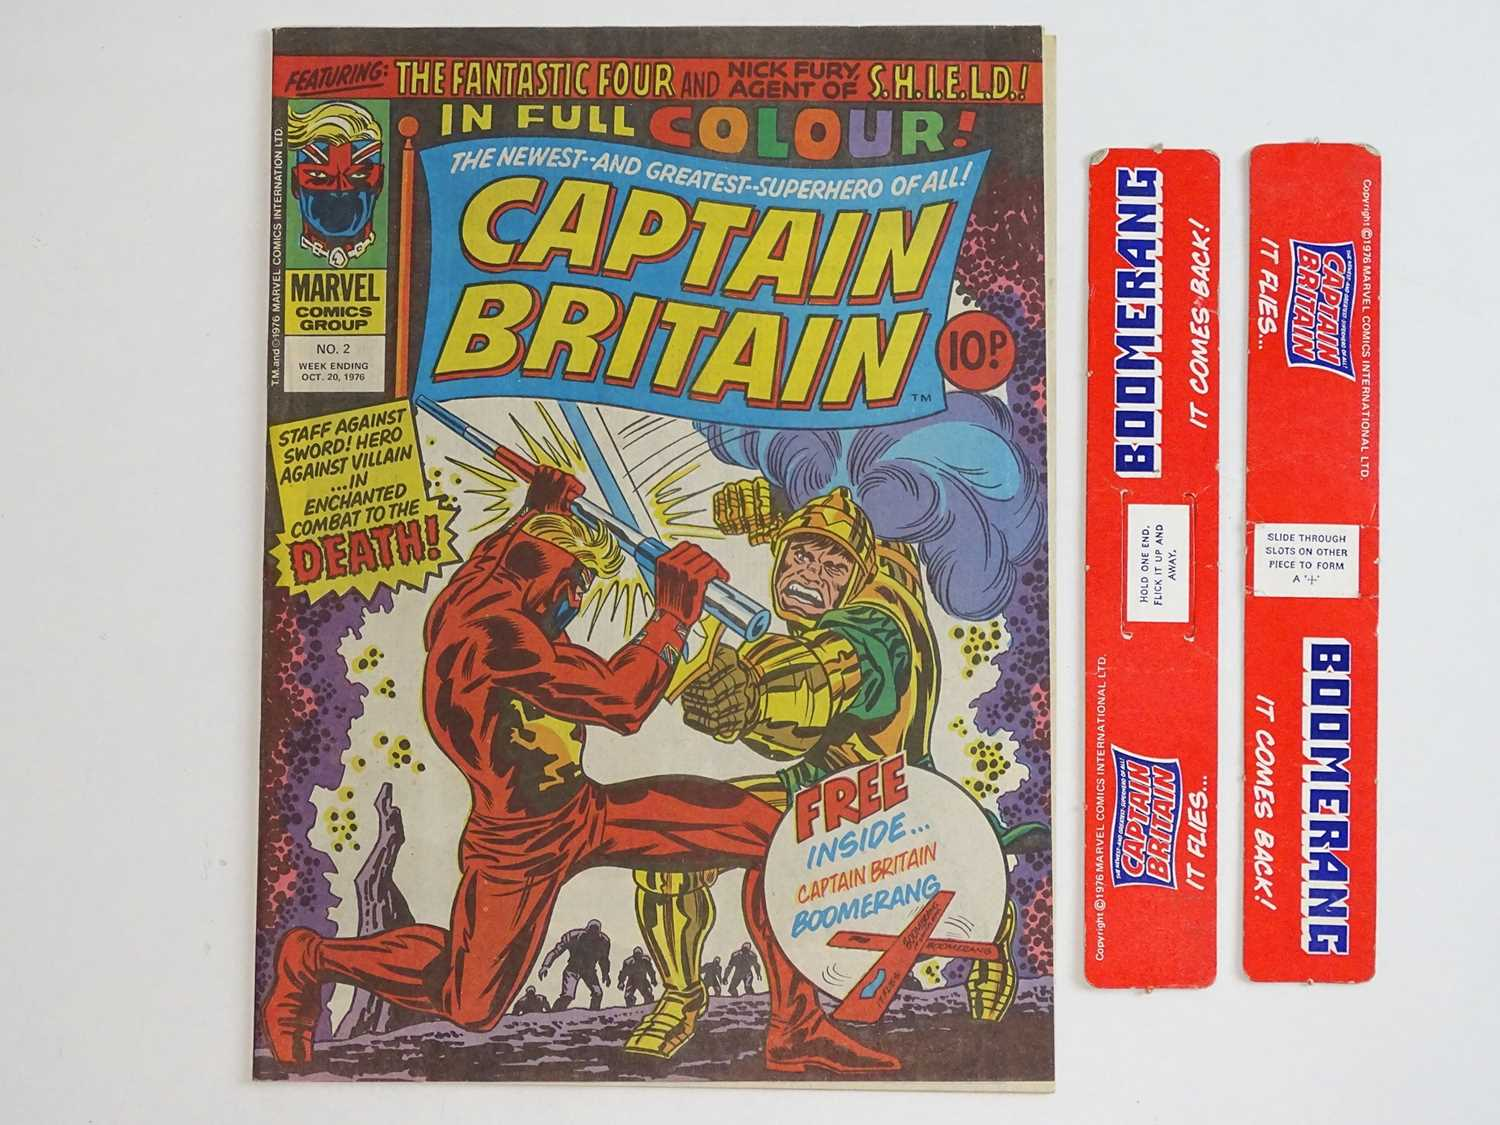 CAPTAIN BRITAIN #1 to 39 - (39 in Lot) - (1976/77 - BRITISH MARVEL) - Complete 39 issue run from # - Image 6 of 11